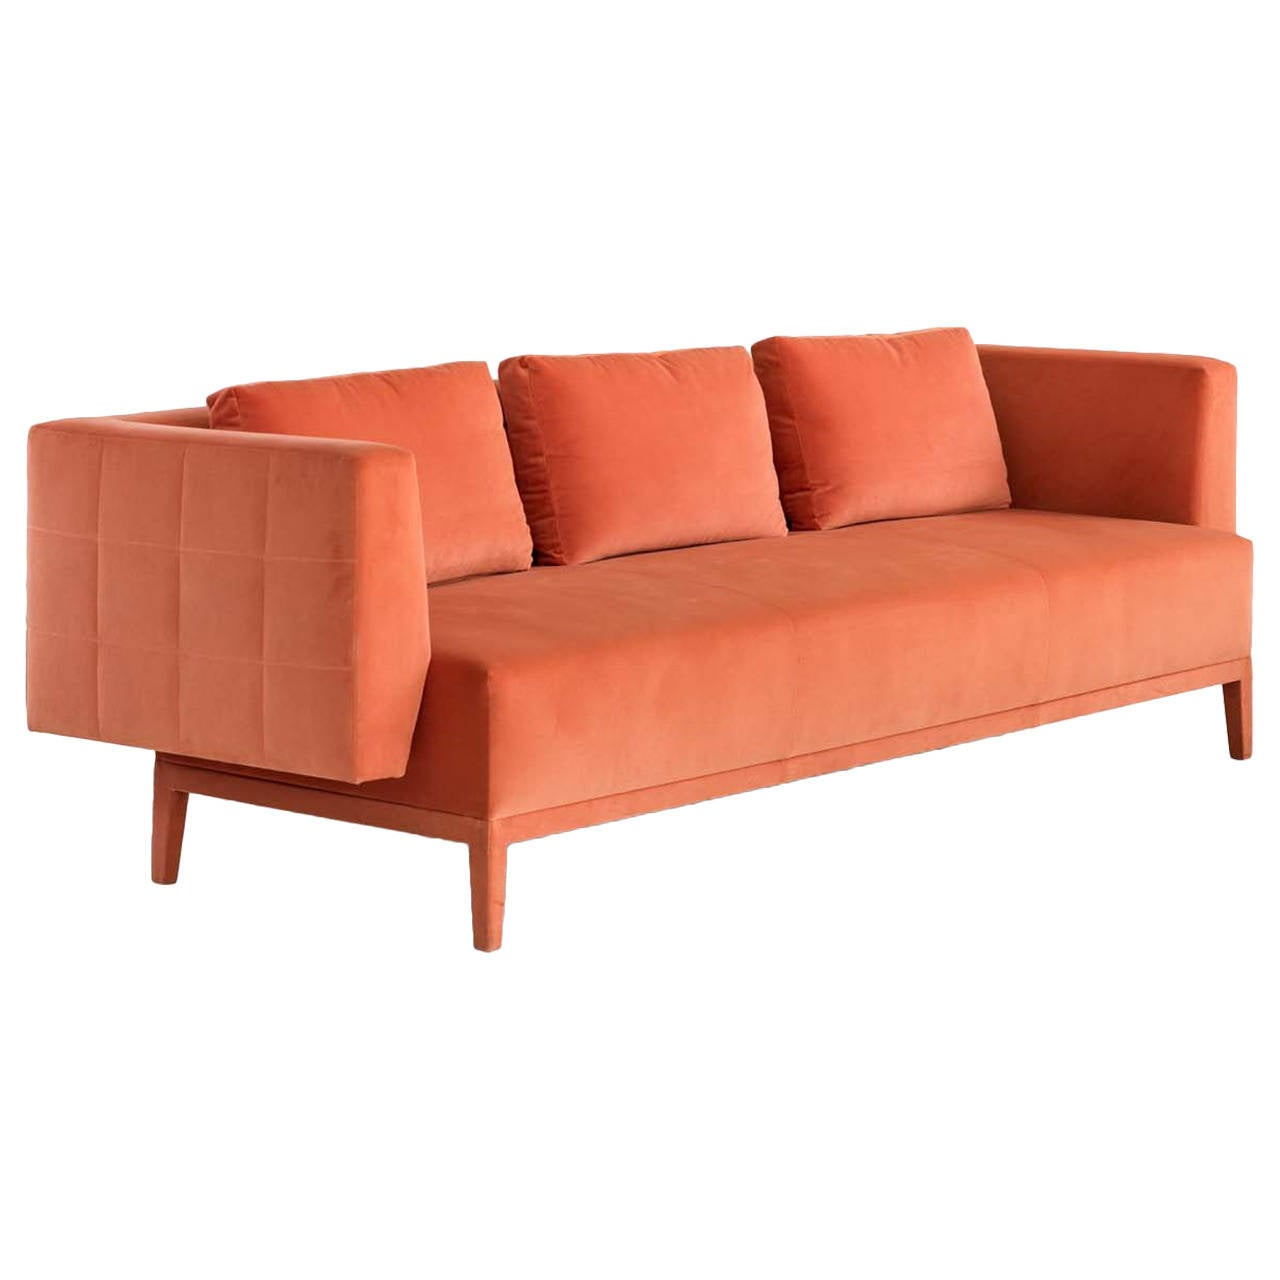 Liston Sofa With Quilted Back And Sides In Orange French Velvet 1